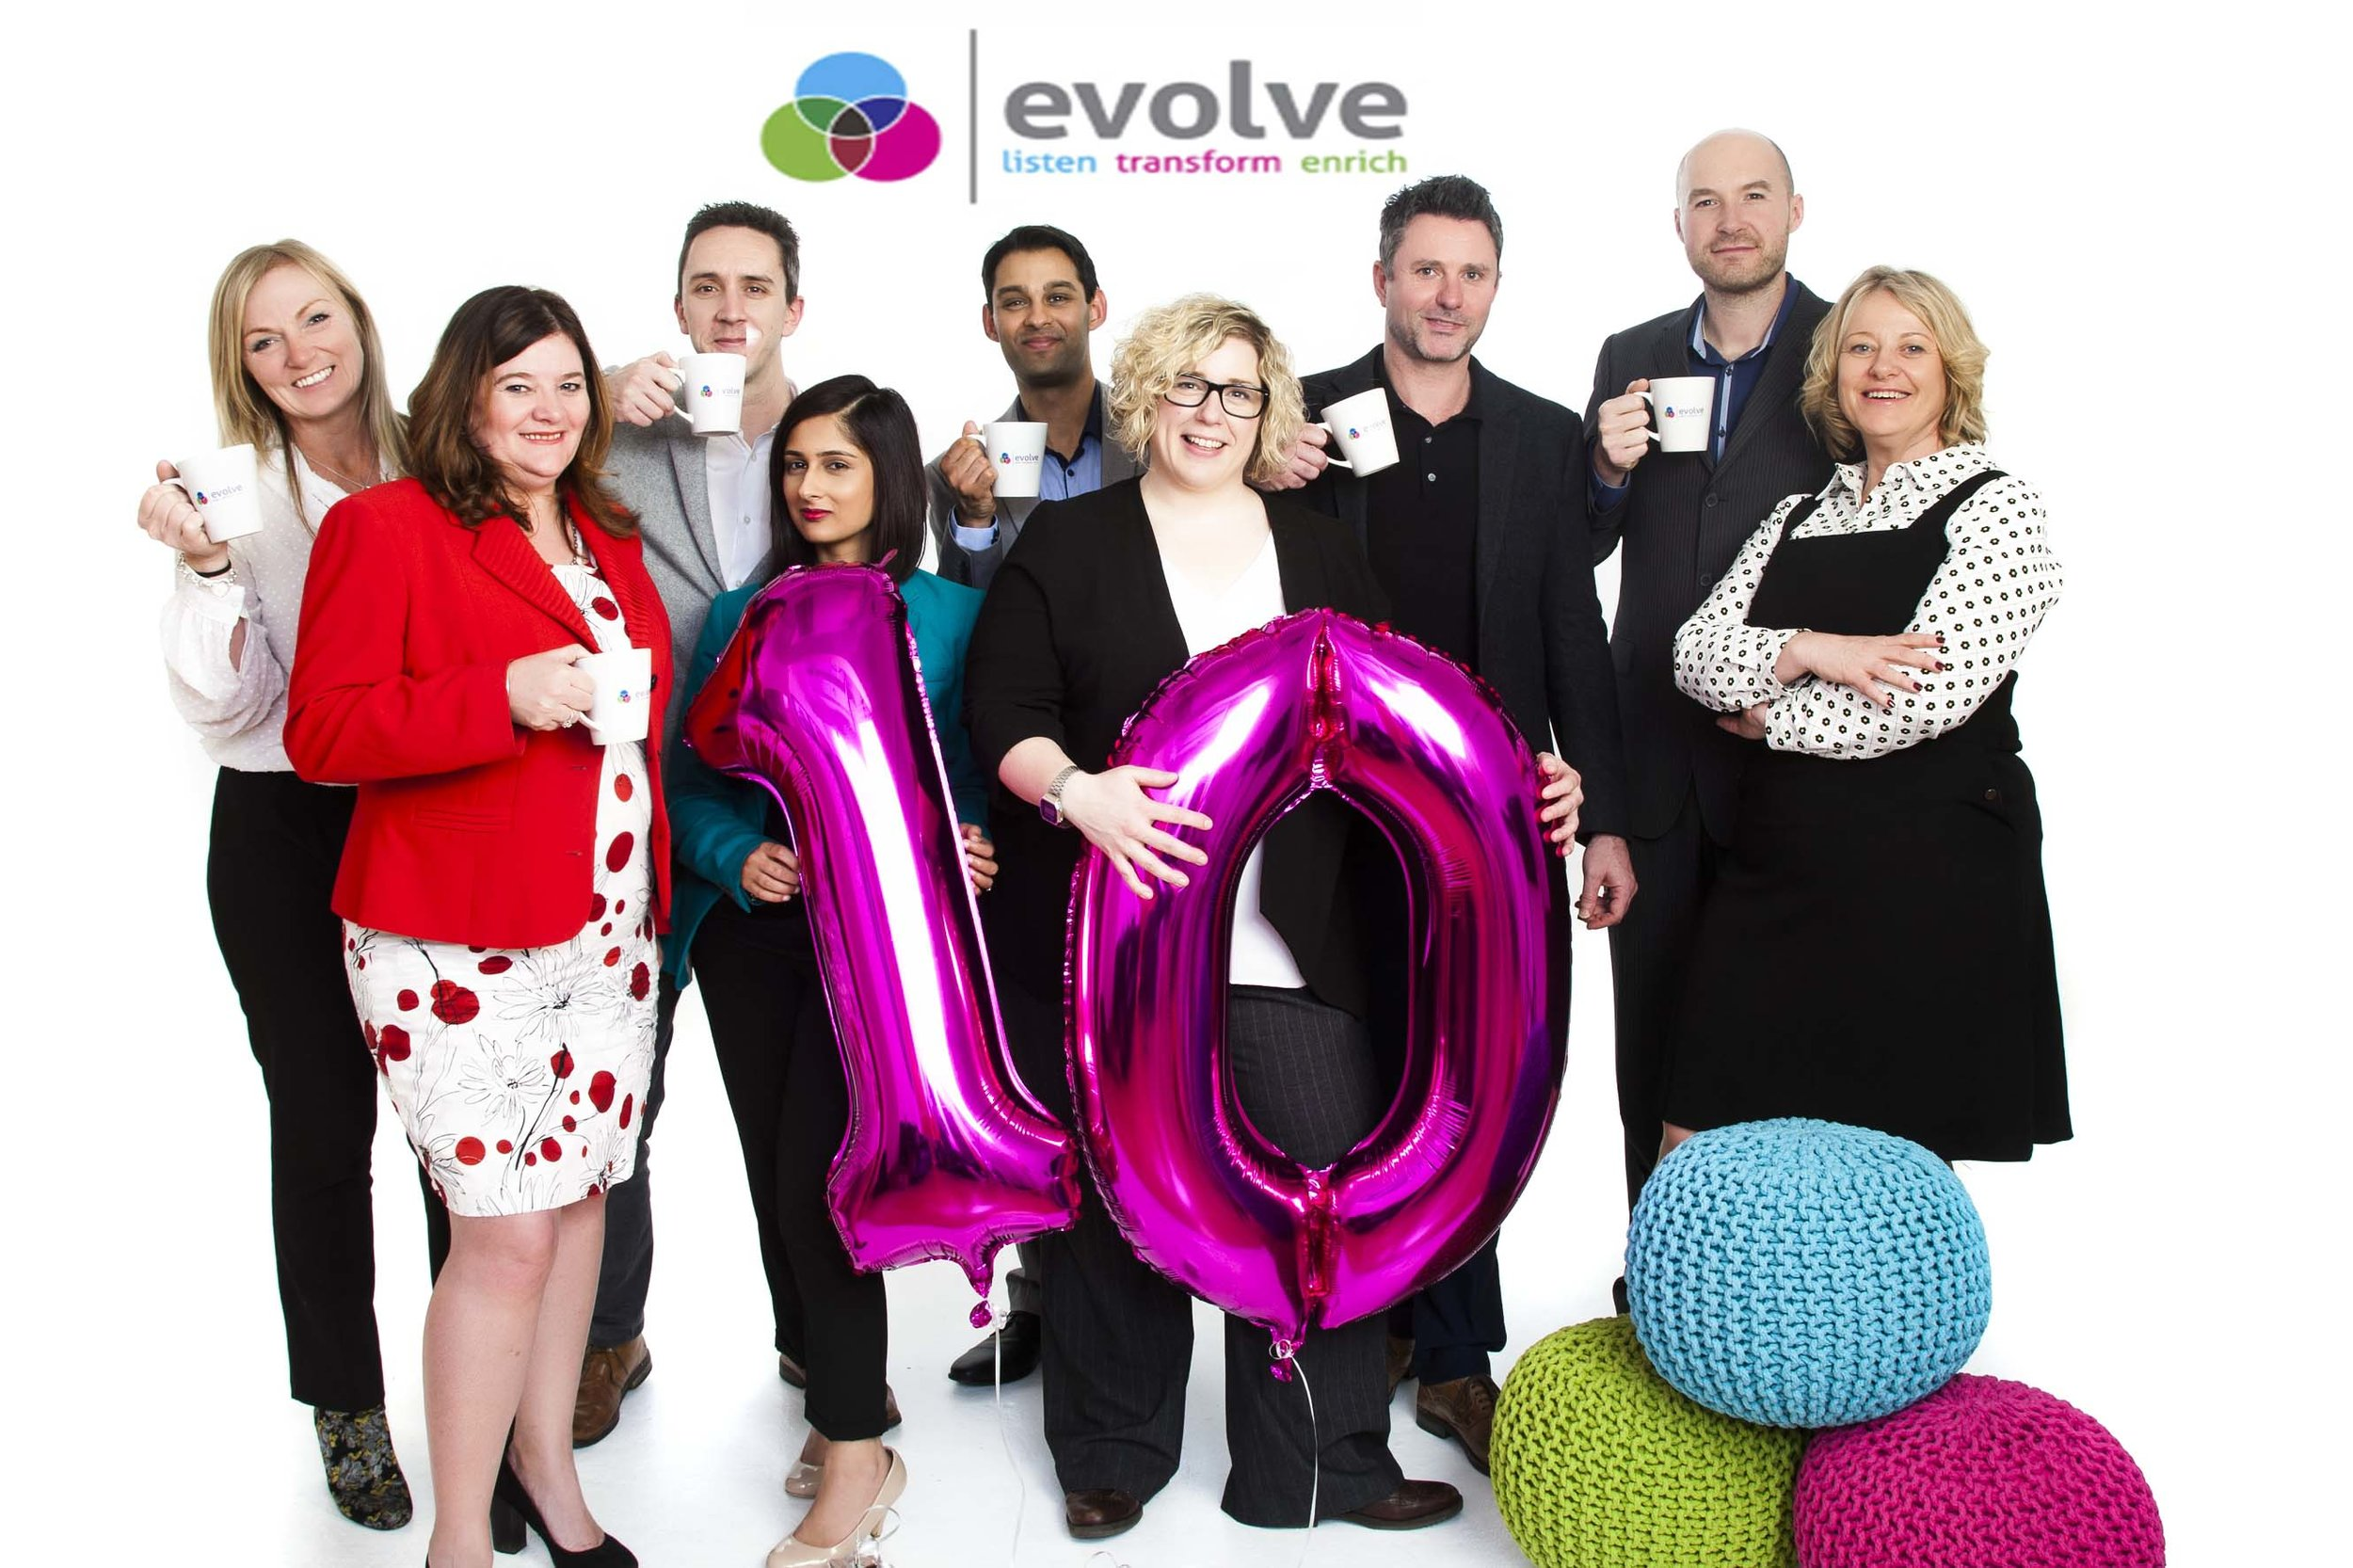 zigzag-photography-leicester-corporate-head-shots-staff-proffessional-company-team-photo-shoot-evolve-consultancy.jpg